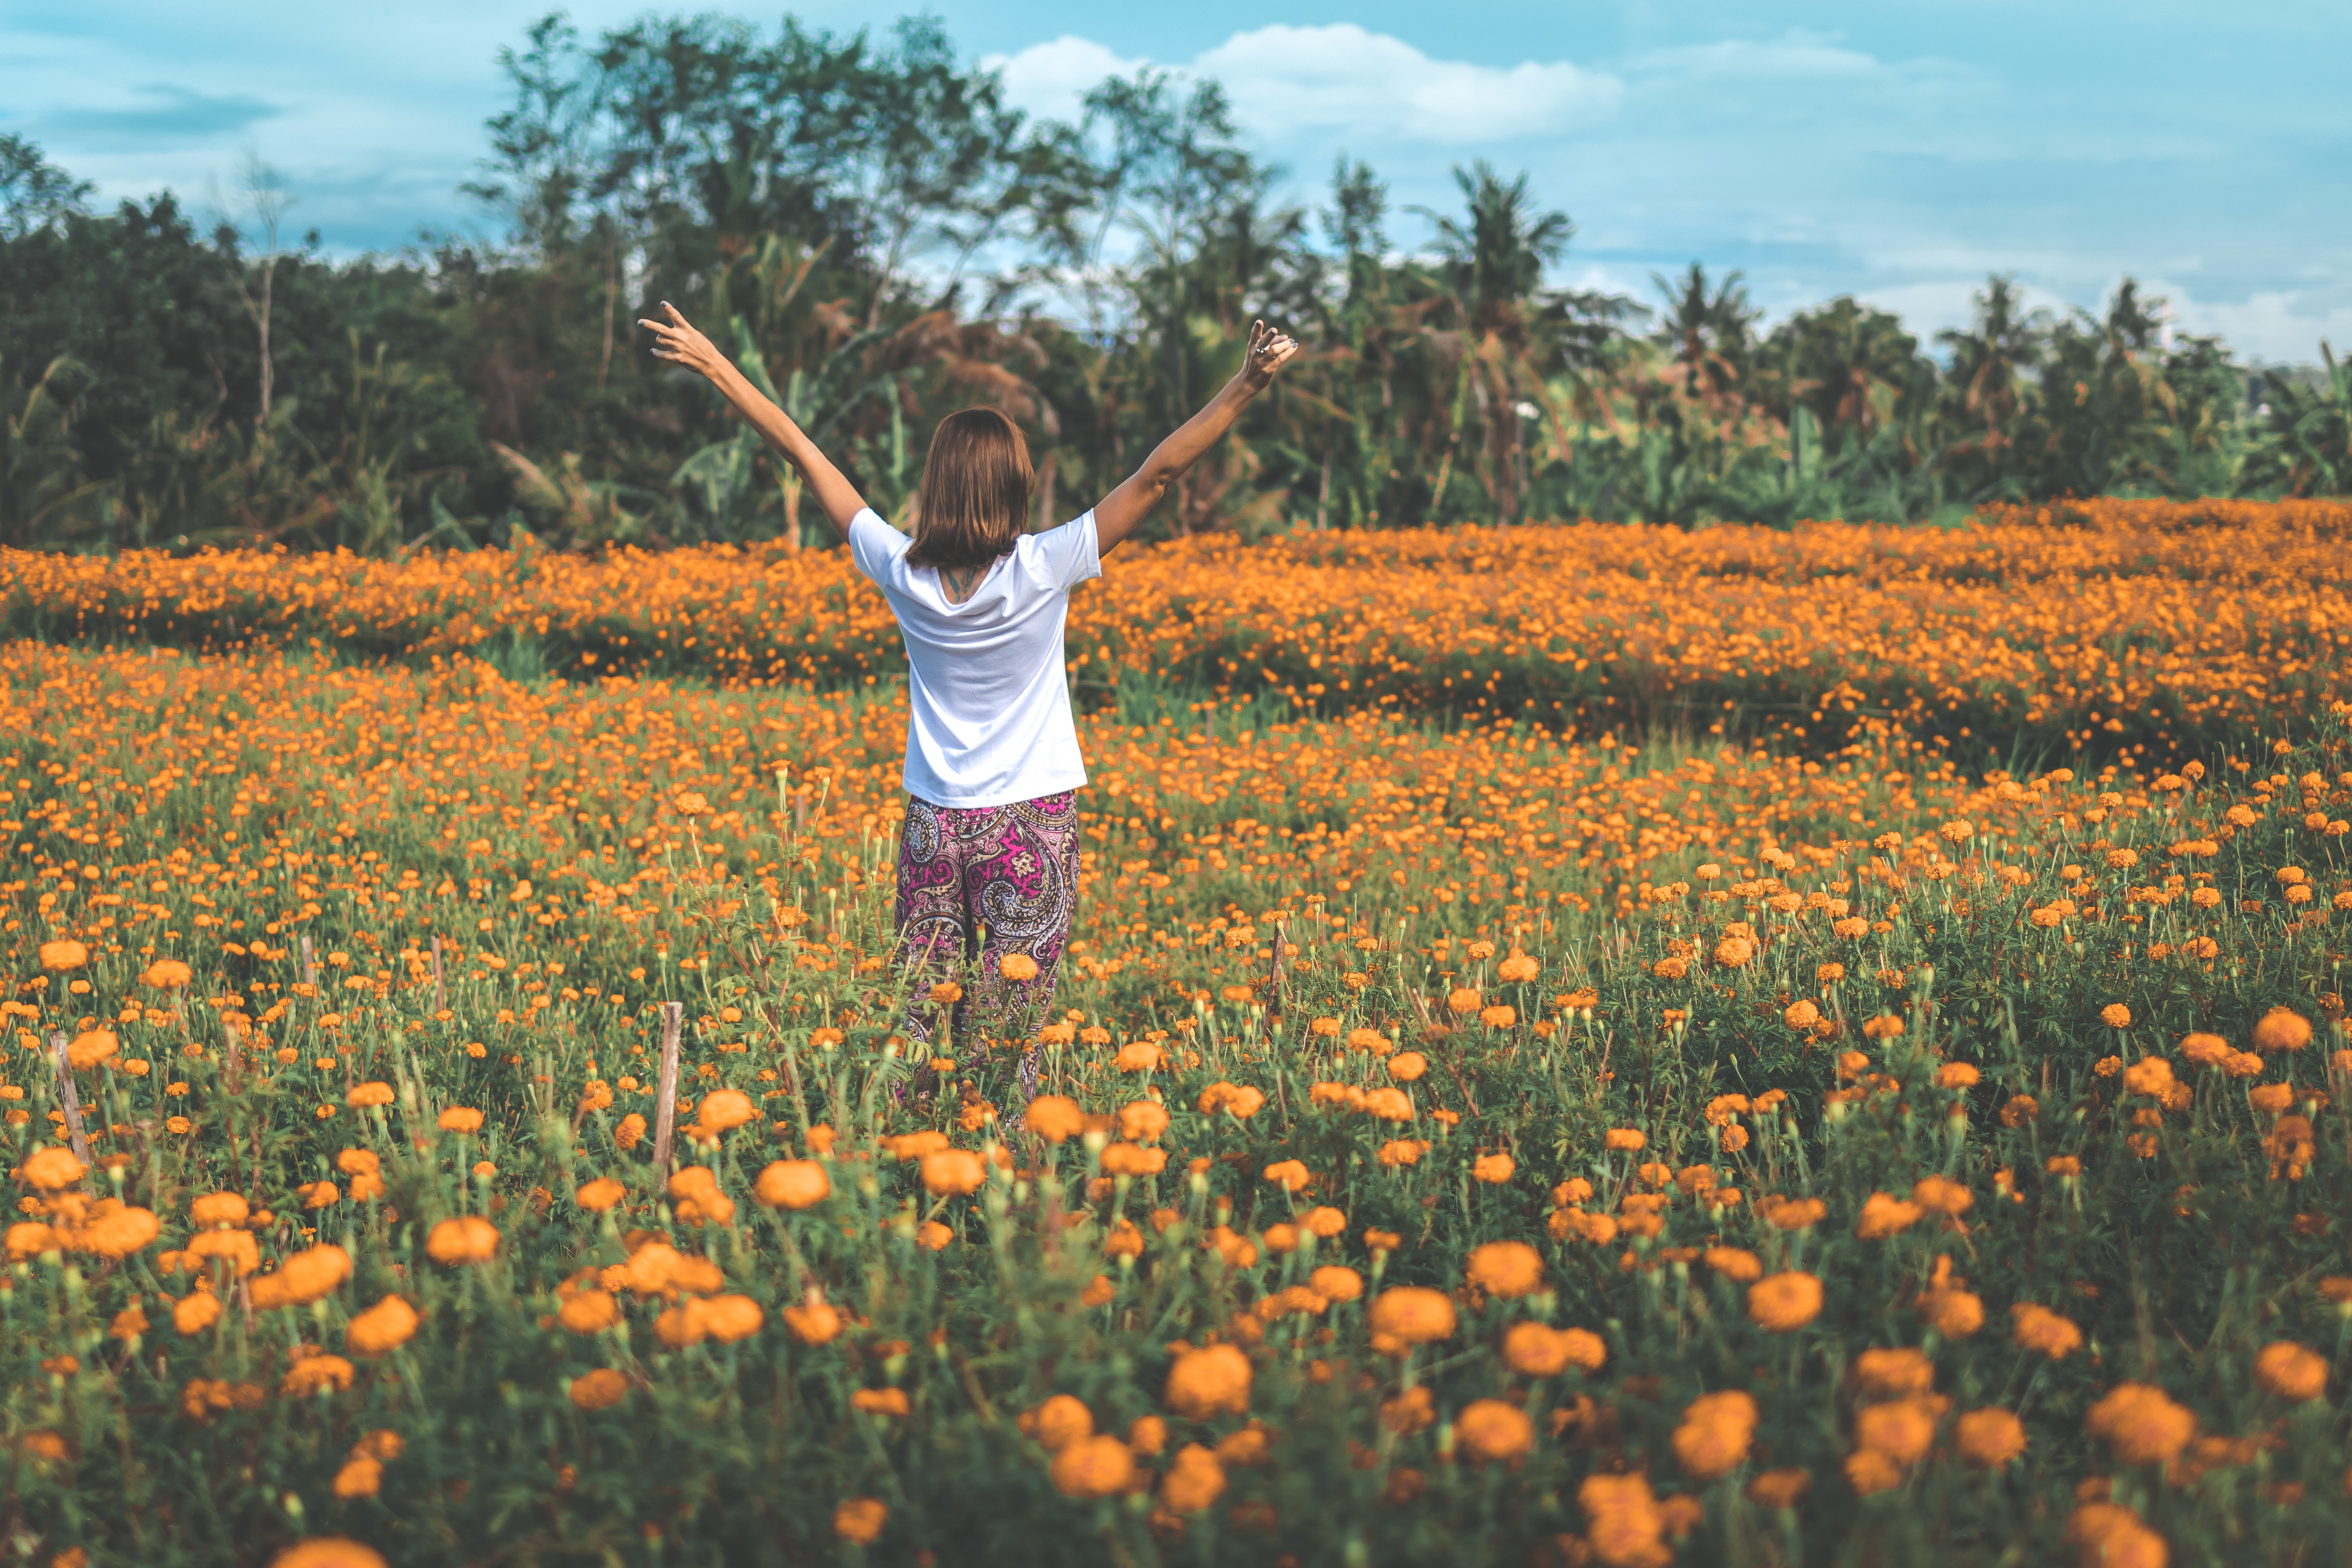 woman standing in orange flower field during daytime